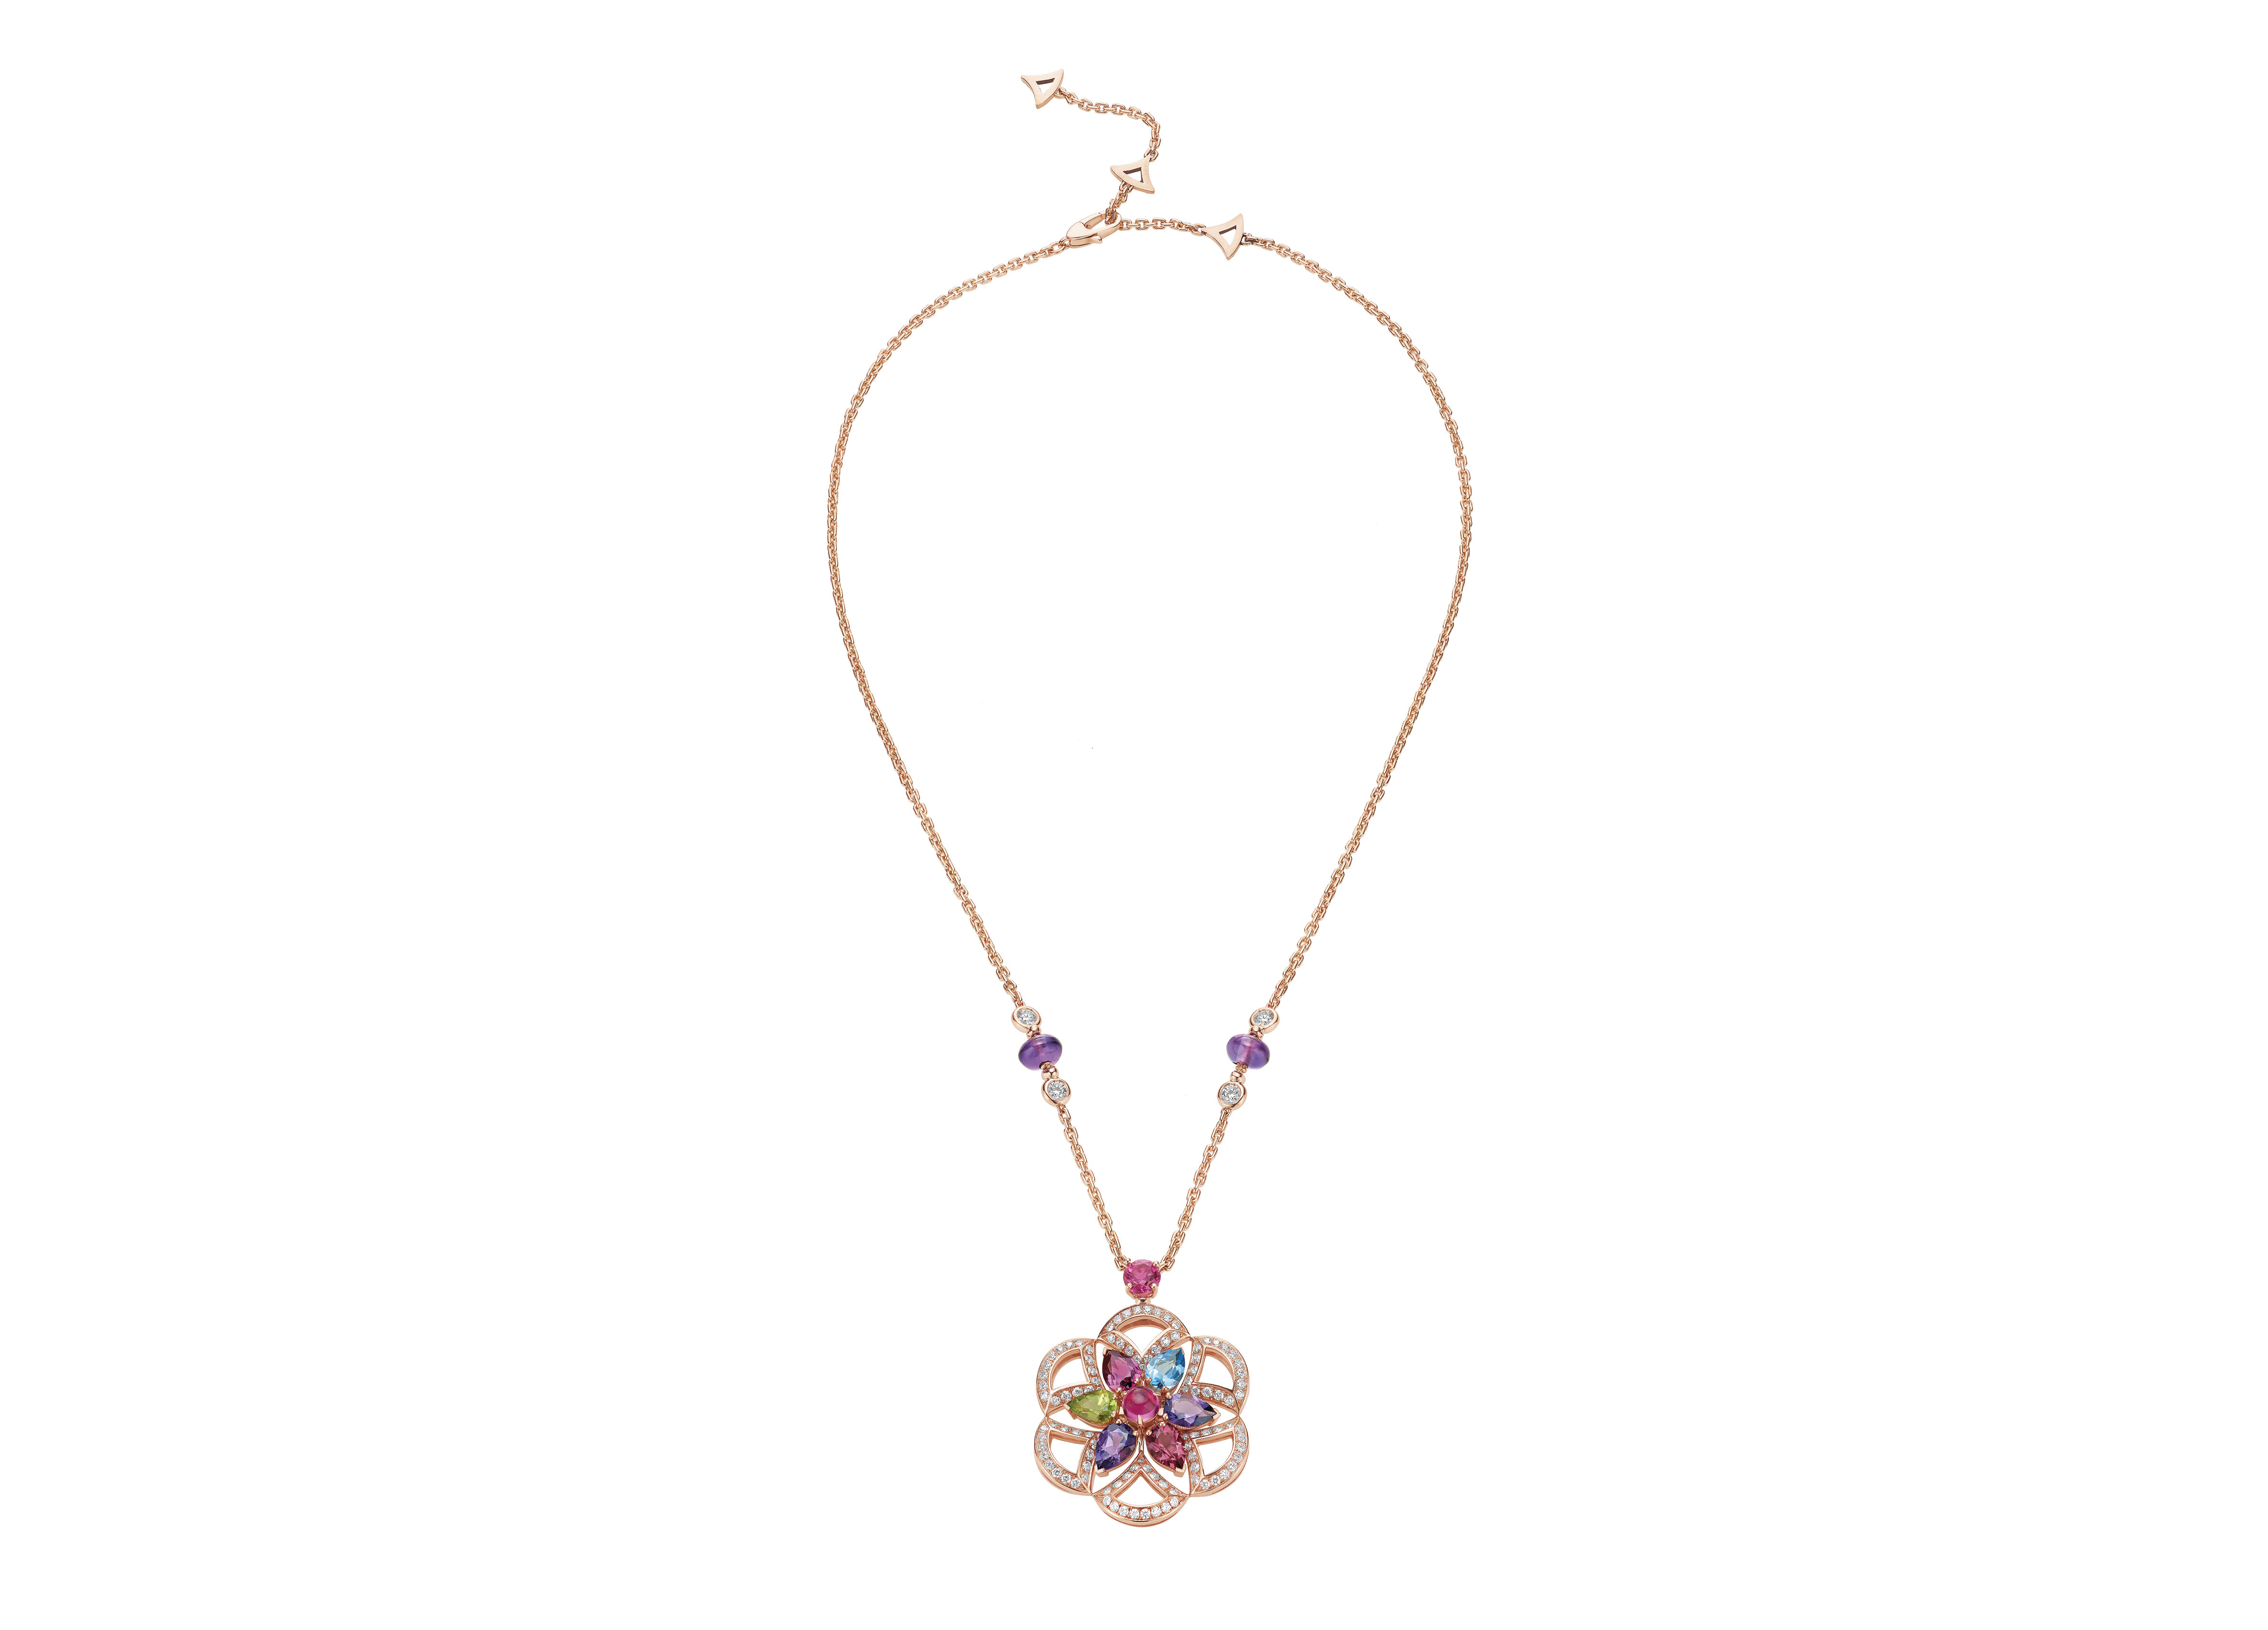 Colorful gemstone necklace